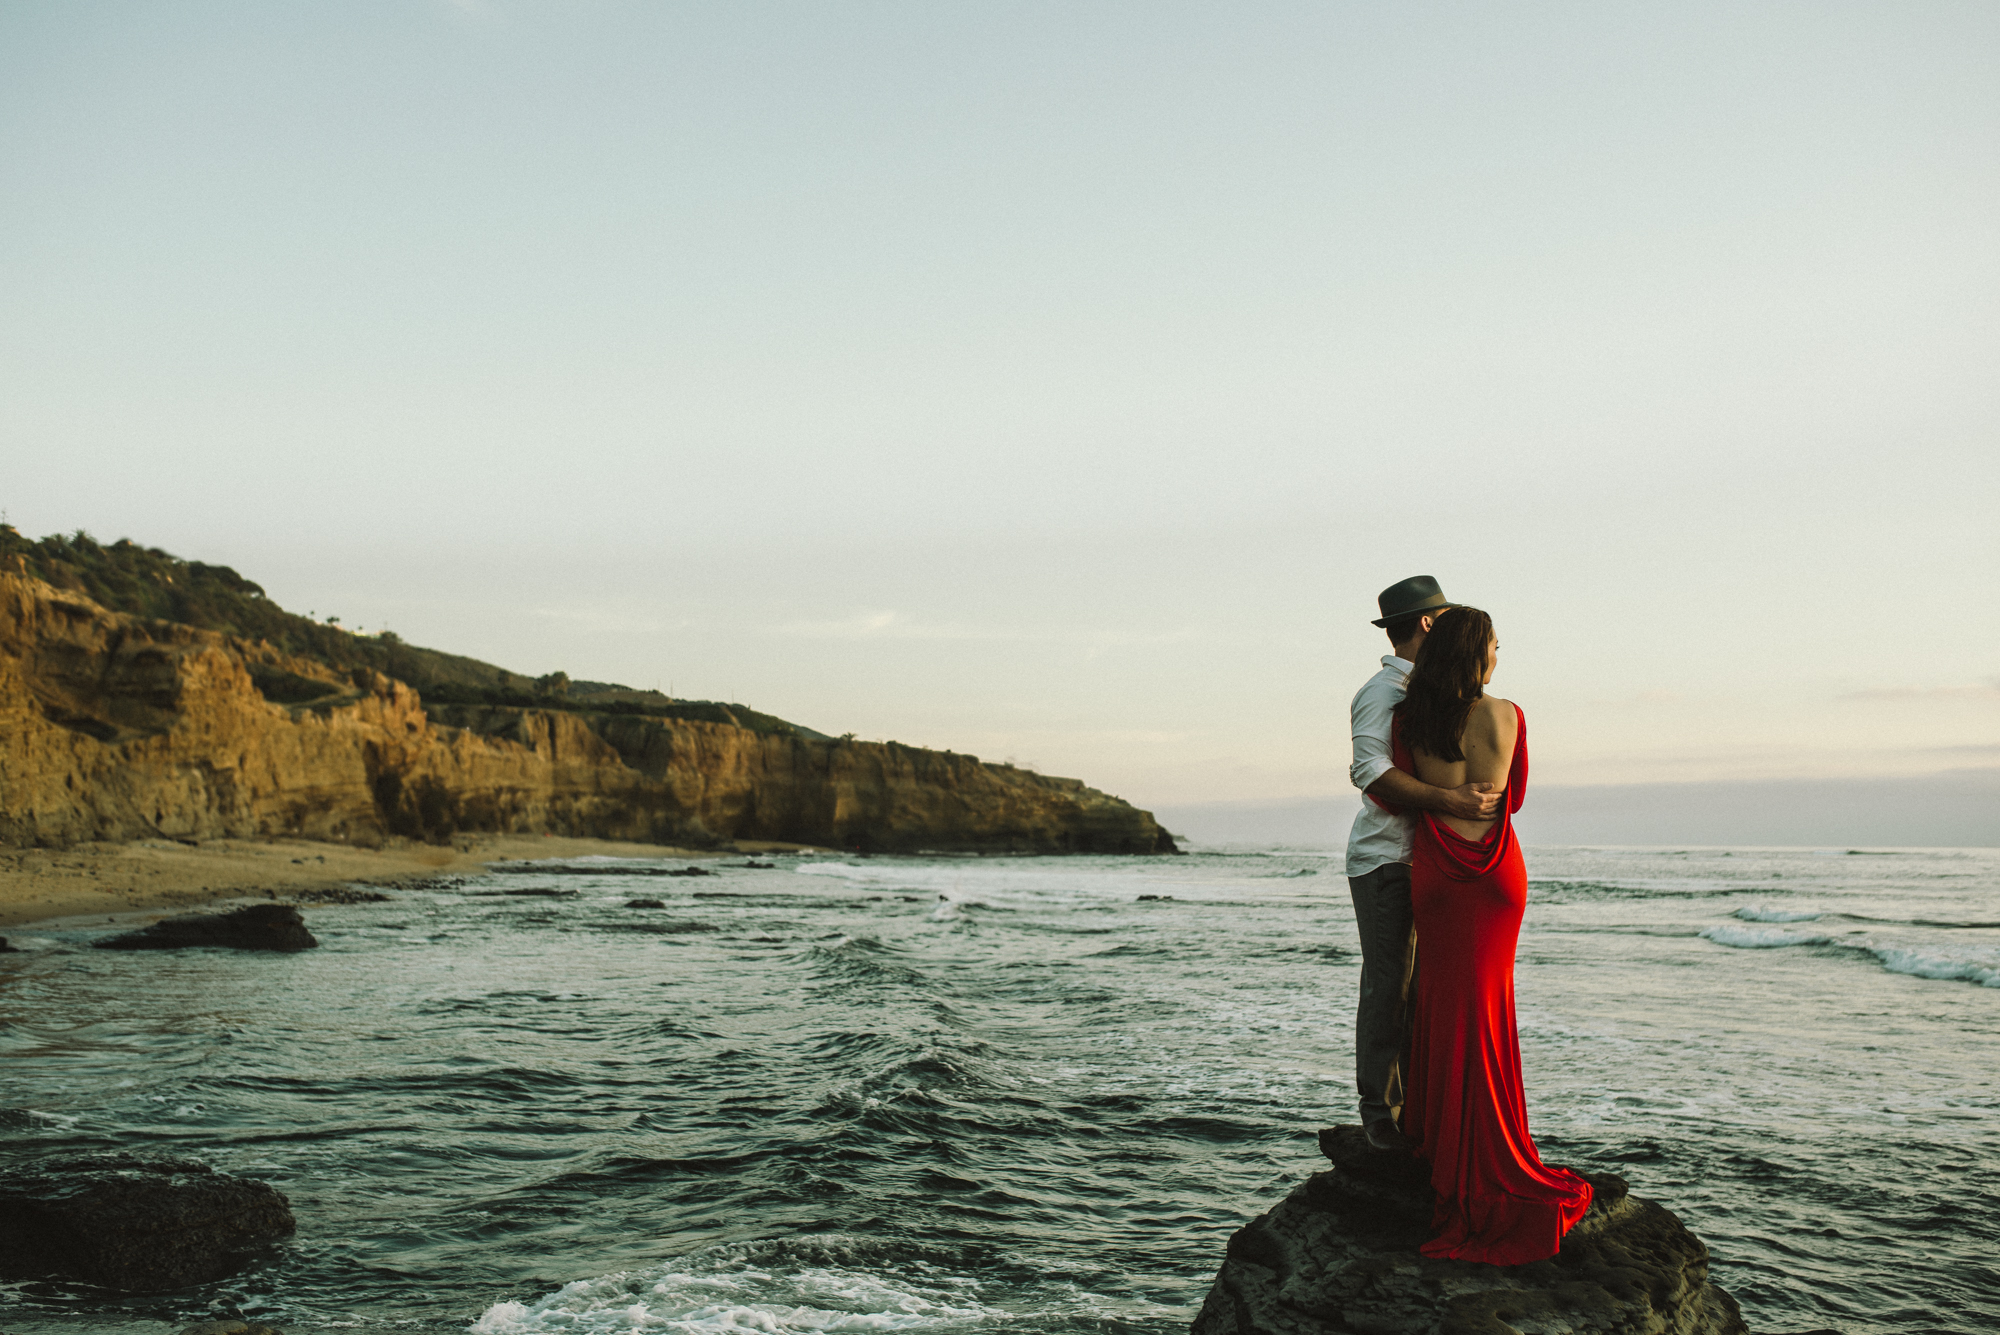 Isaiah & Taylor Photography - Los Angeles - Destination Wedding Photographers - San Diego Sunset Cliffs Beach Adventure Engagement-33.jpg